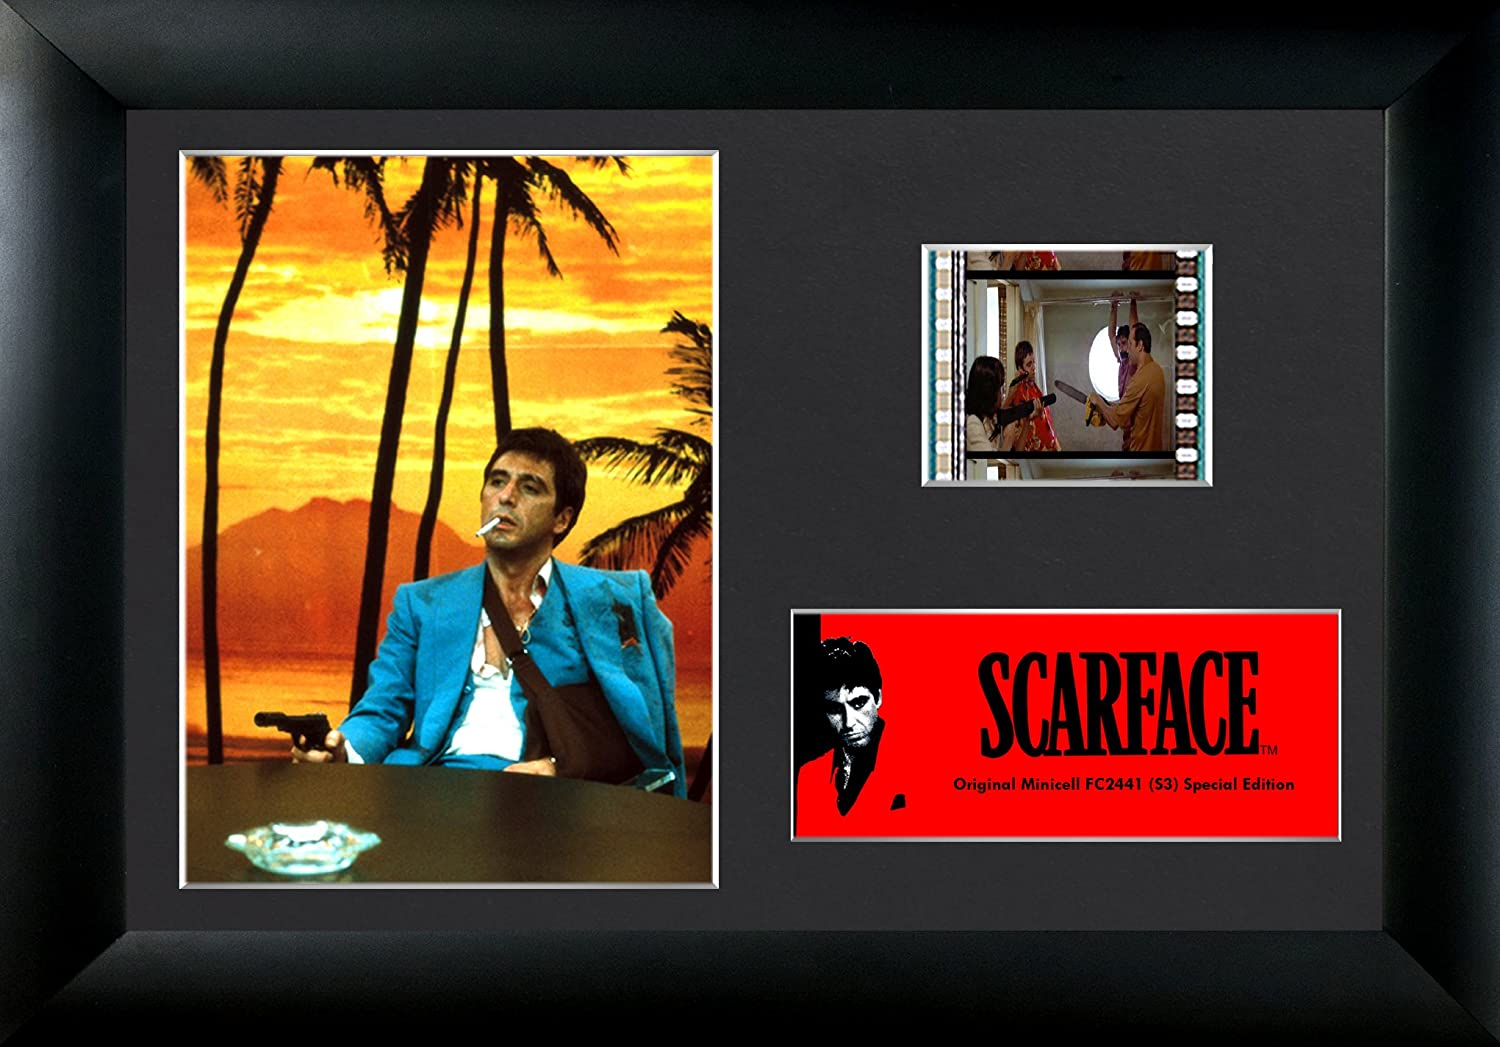 Scarface (Tony Montana - Every Dog Has Its Day) Authentic 35mm Film Cells Special Edition MiniCell Display